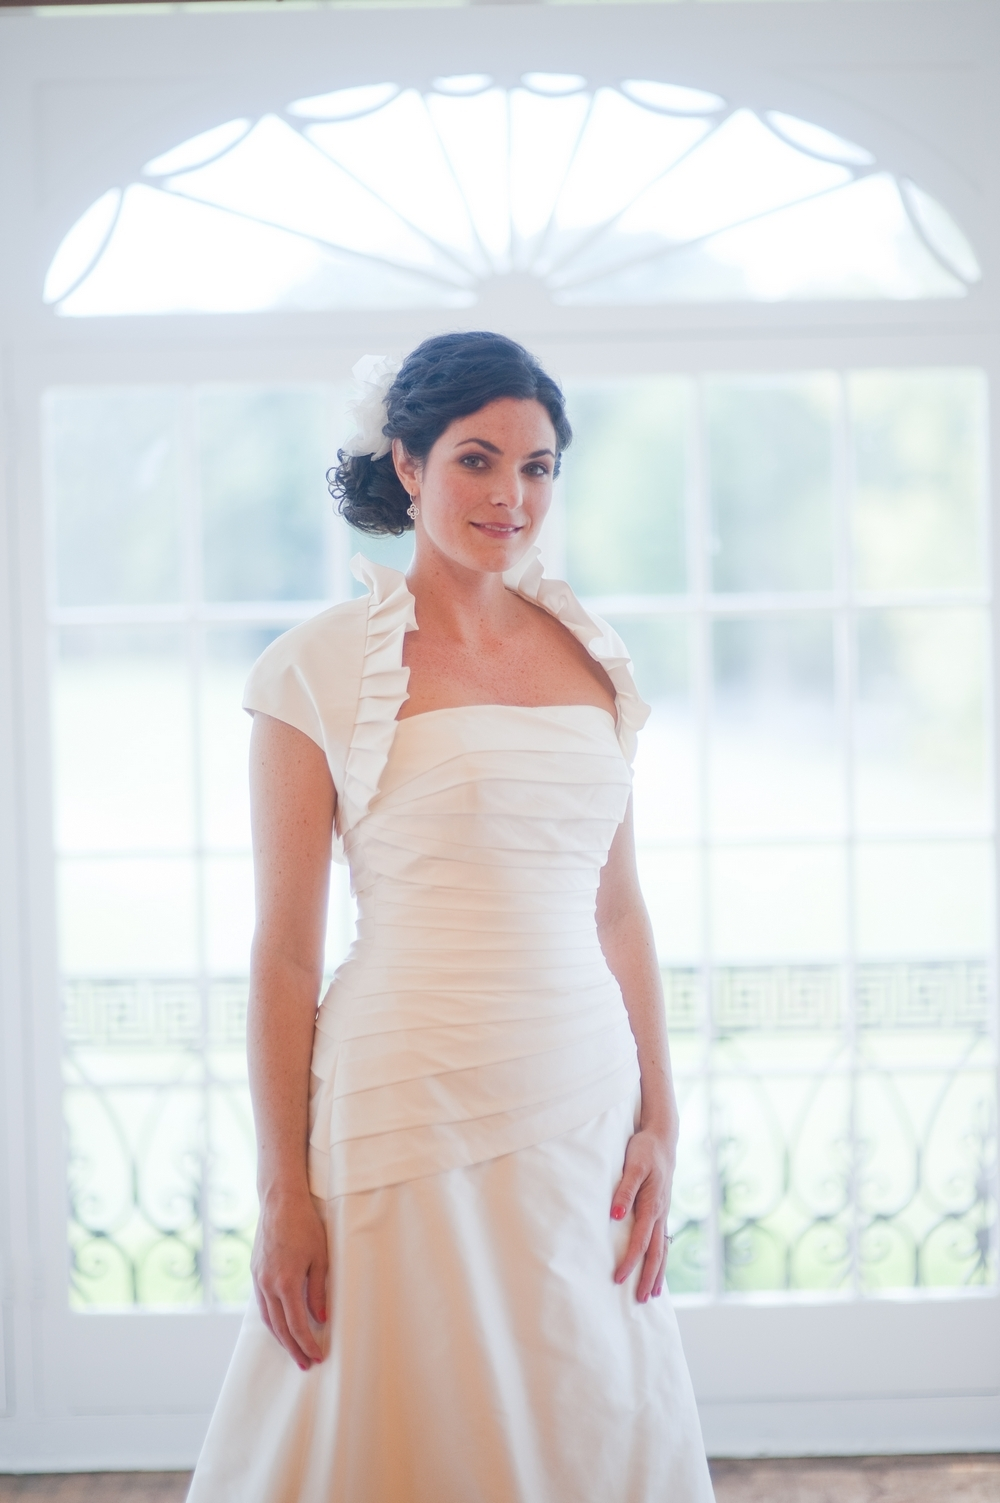 Wedding-hairstyles-updo-classic-curly-updo-with-flower-in-hair-ivory-strapless-wedding-dress.full